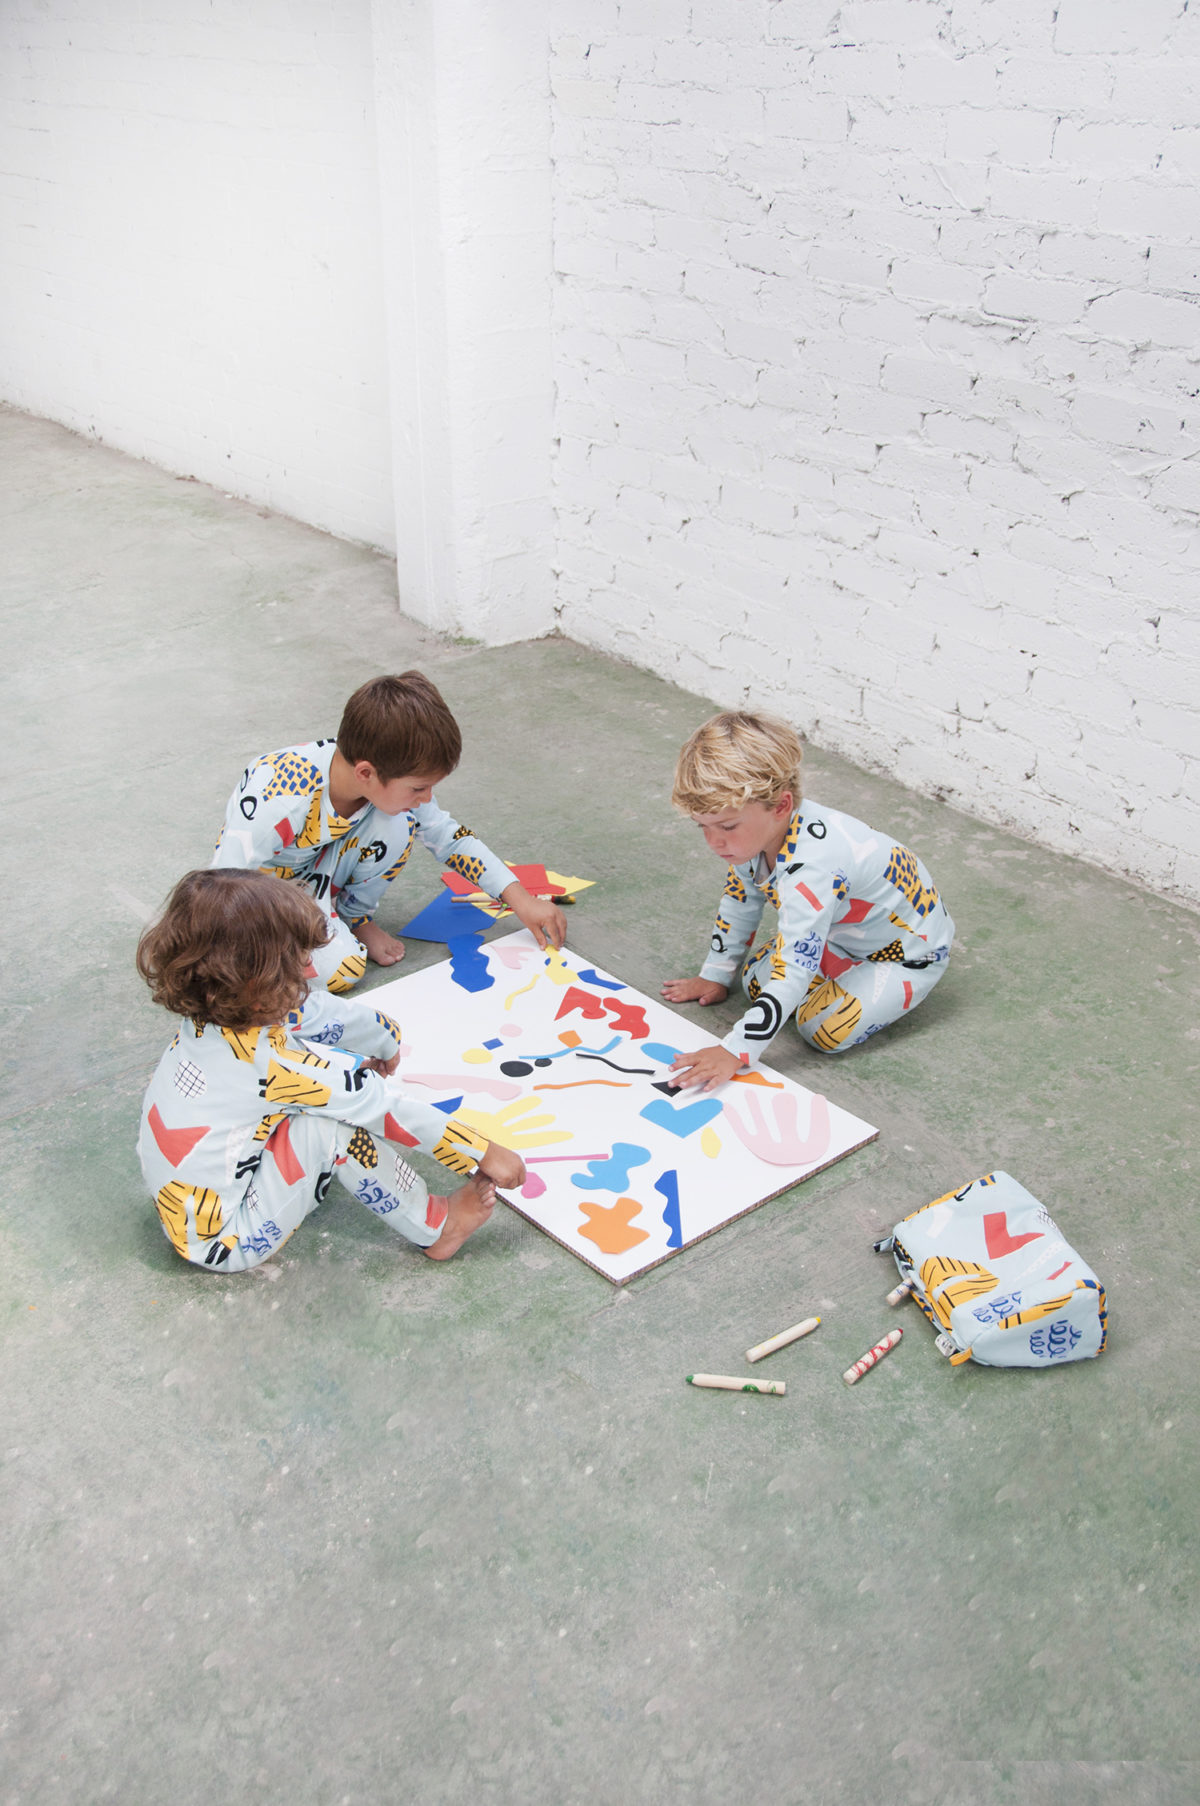 BEYOND THE BUTTERFLIES AND BULLDOGS: GENDER-NEUTRAL CLOTHING FOR CHILDREN